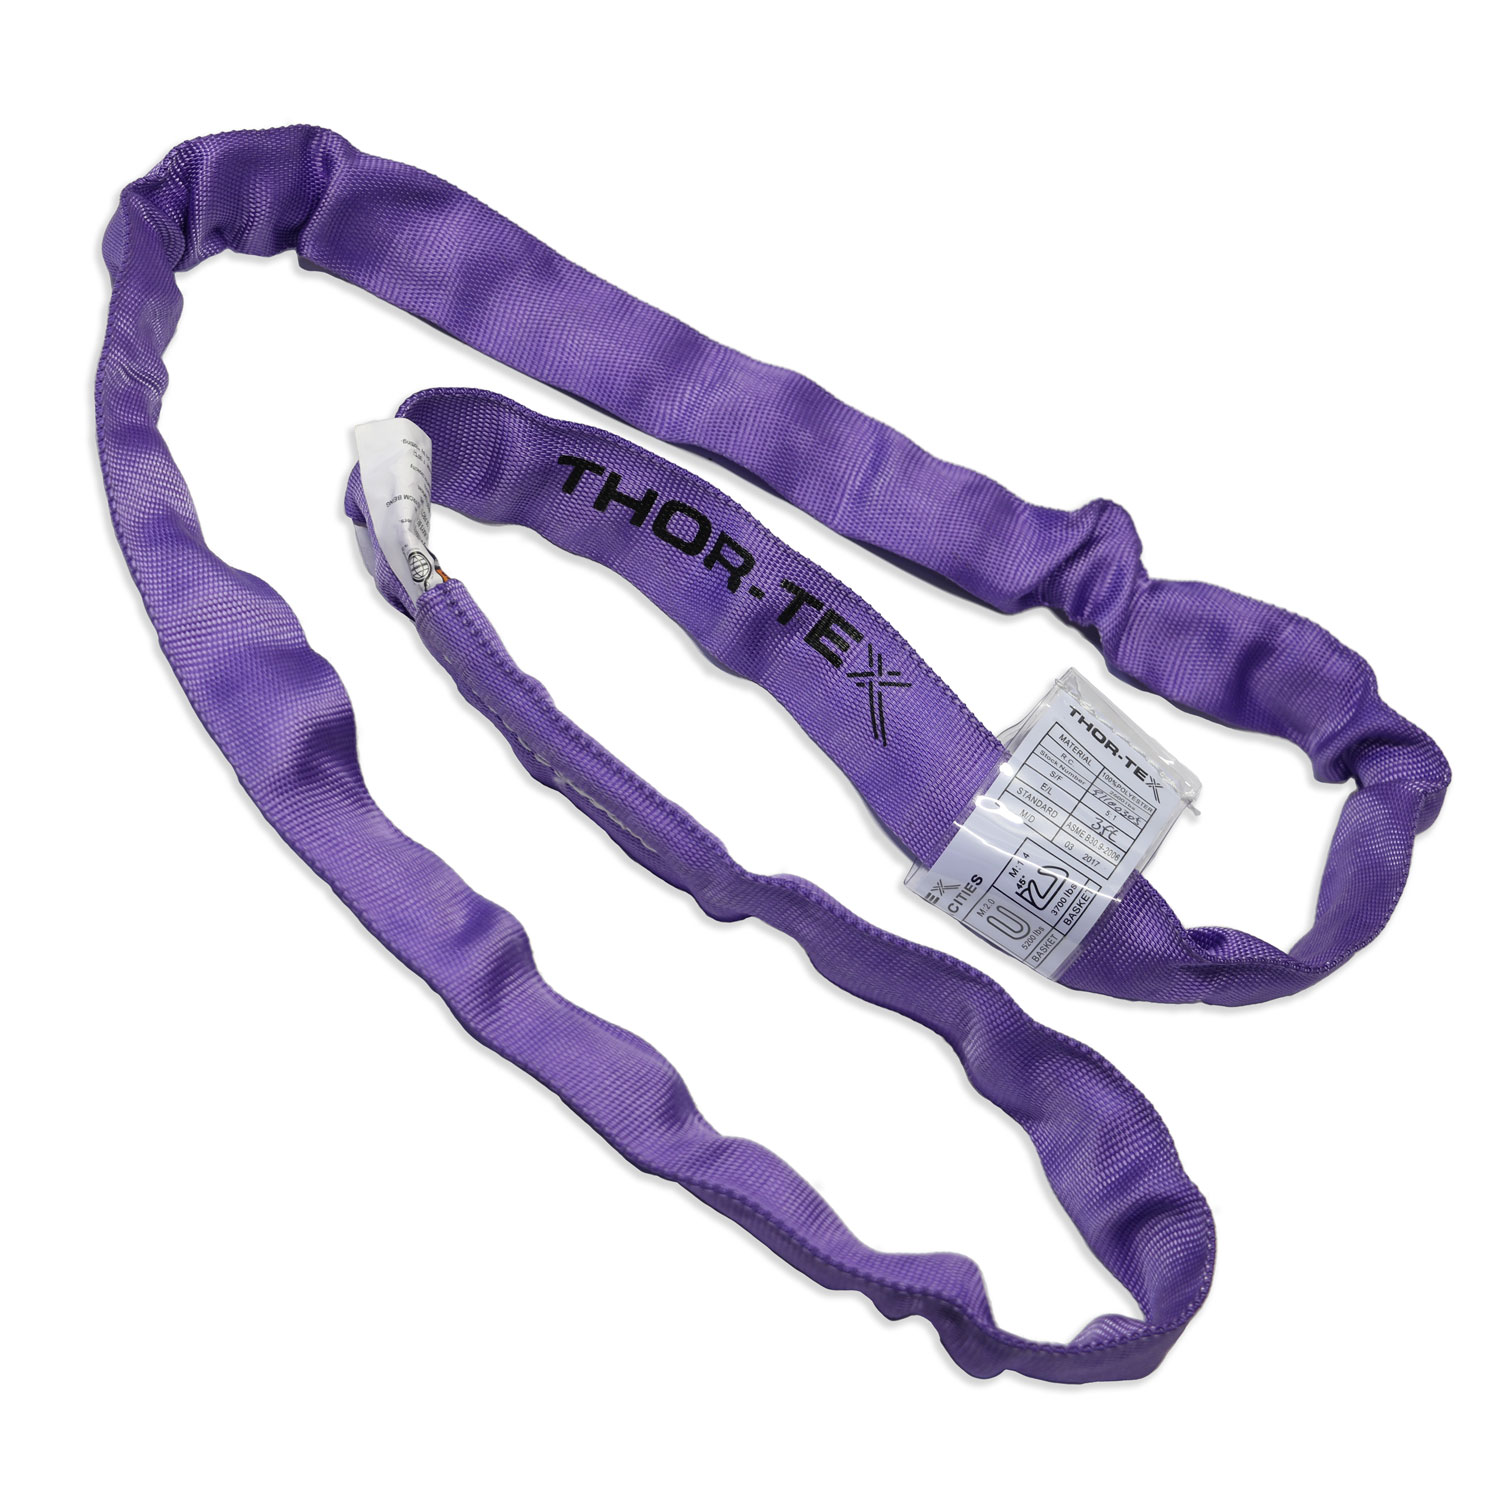 3' X 2600 lbs. Capacity Polyester Round Sling